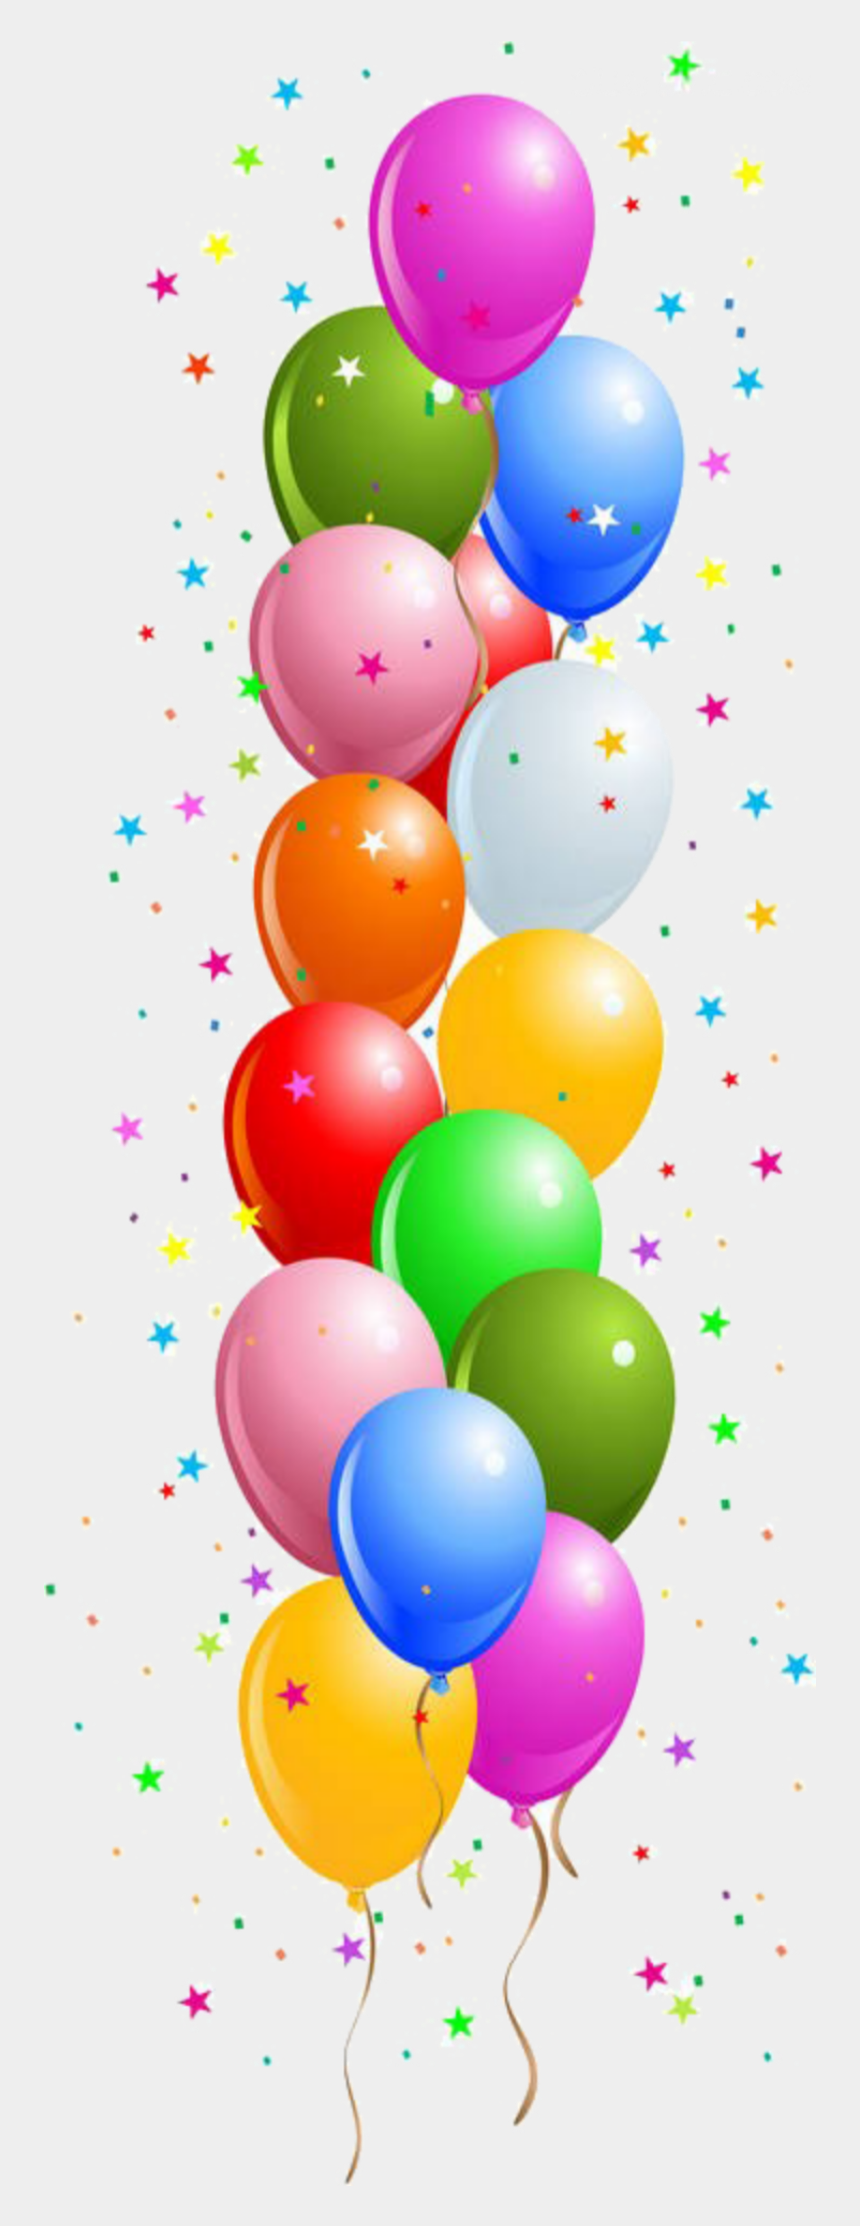 balloons borders clip art free, Cartoons - Border Birthday Balloons Clipart - Birthday Cards Border Designs